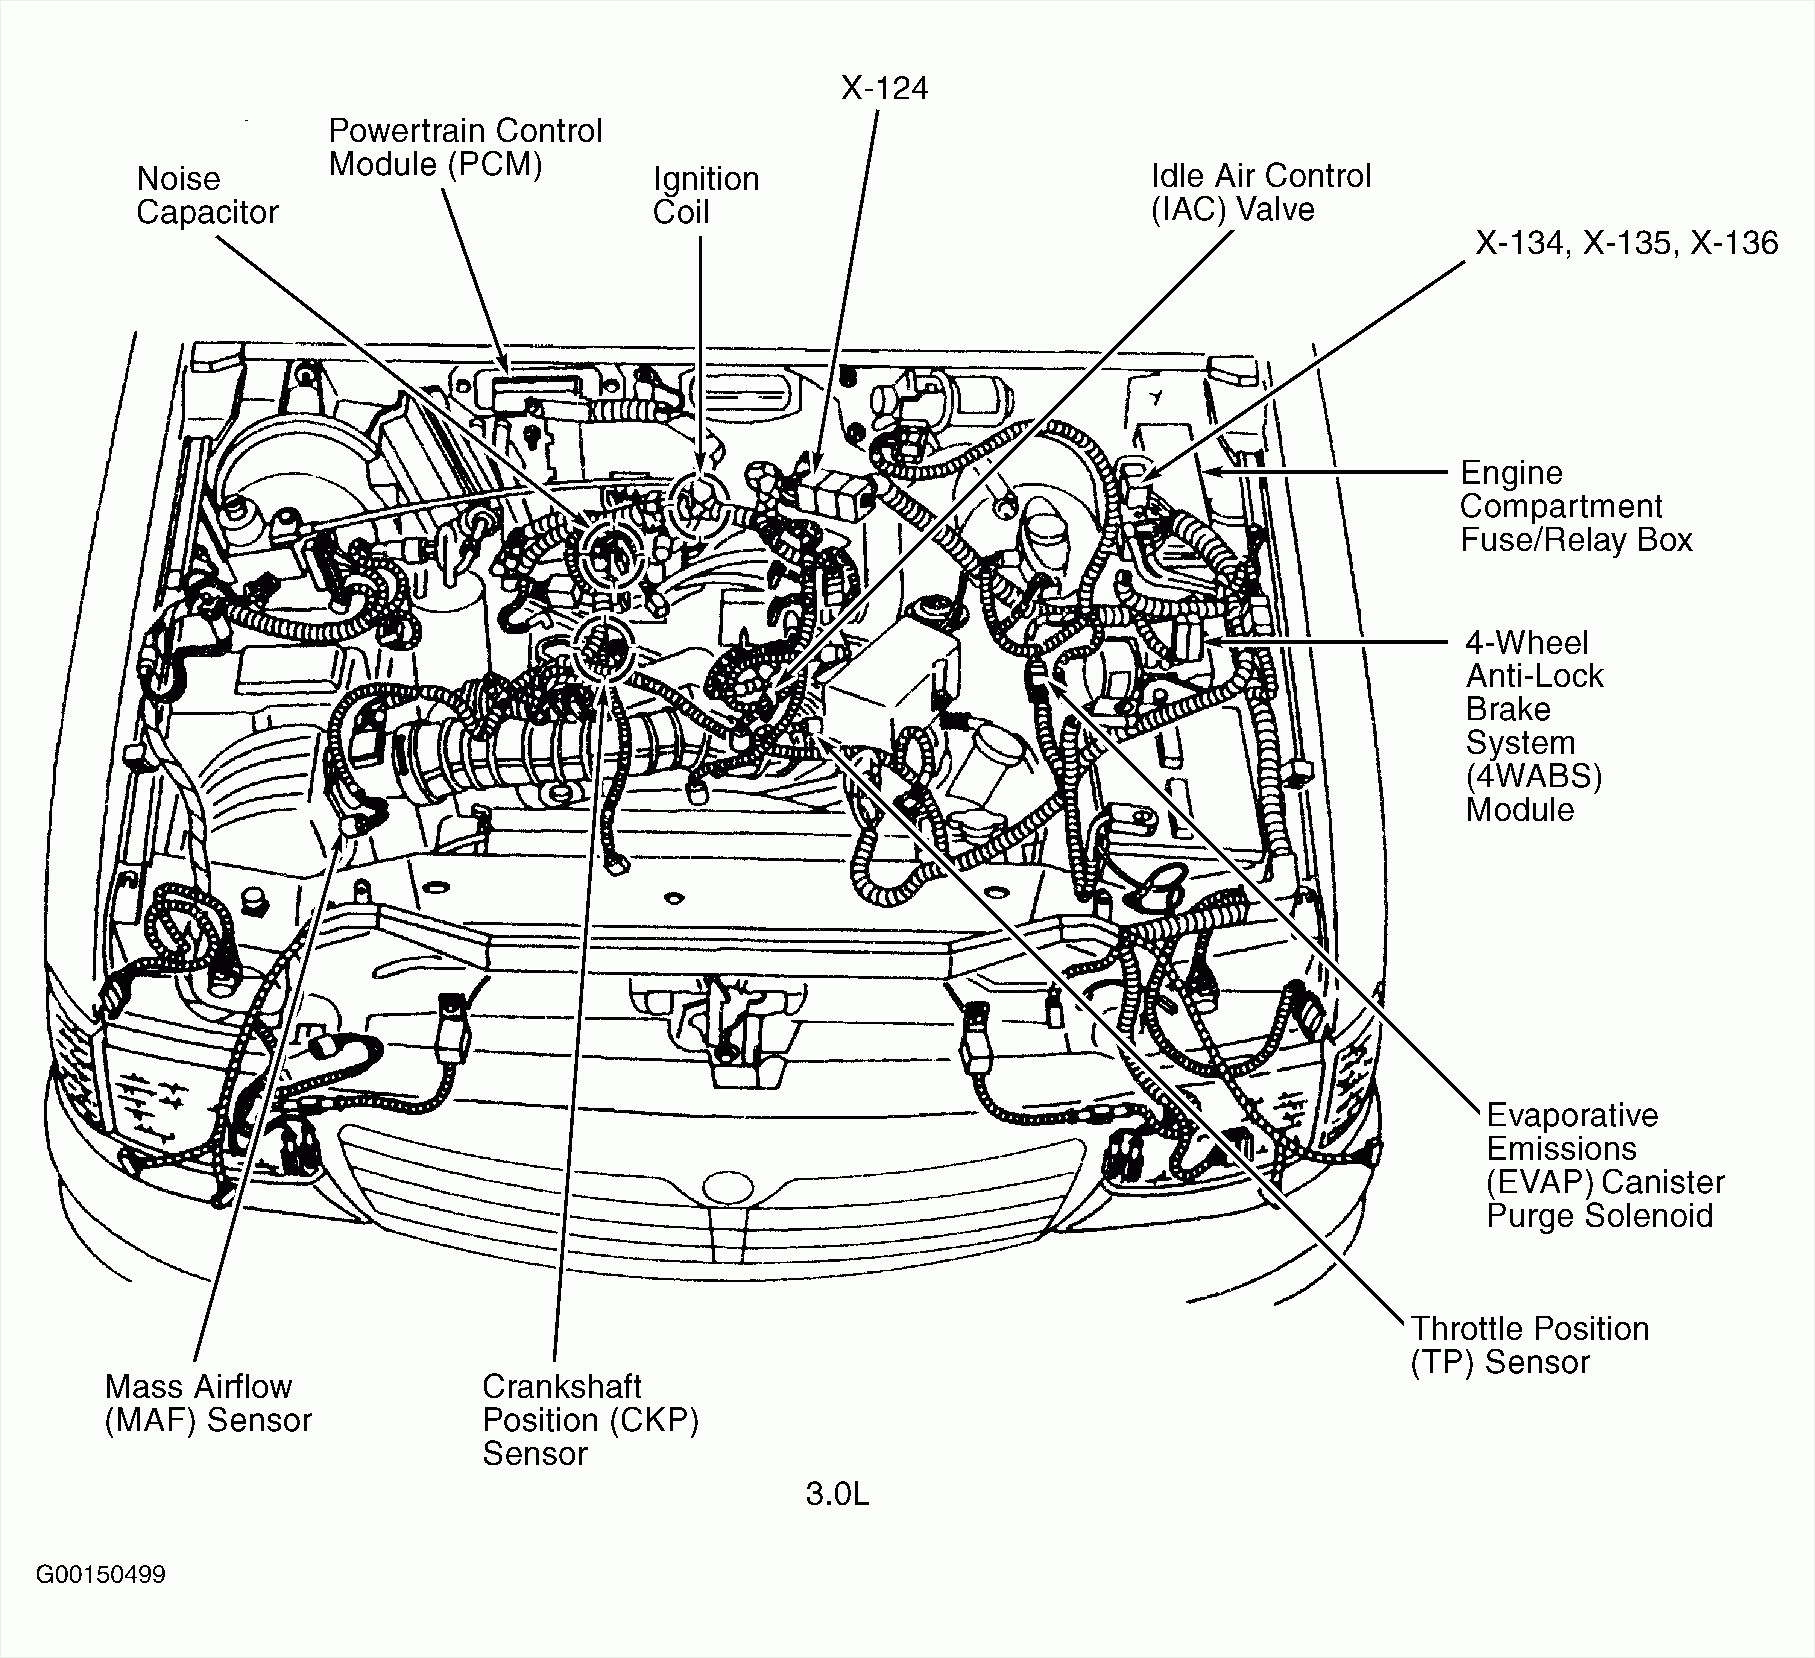 Engine Internals Diagram 2004 Mazda 6 V6 Engine Diagram Wiring Diagrams Of Engine Internals Diagram